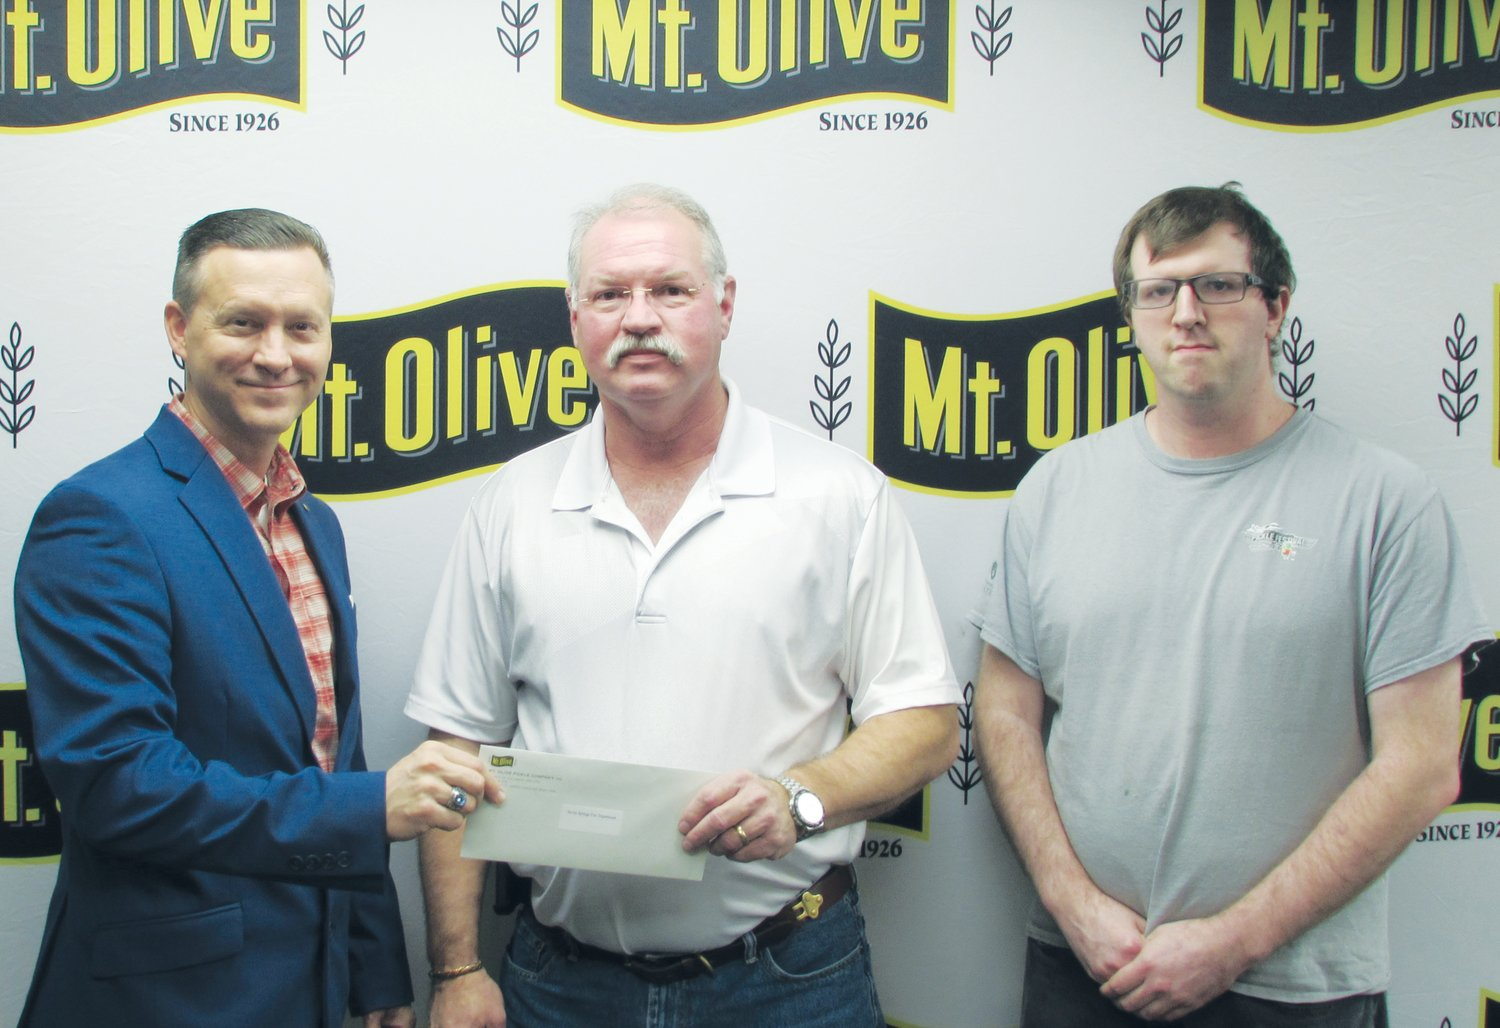 Mt. Olive Pickle Company's Employees Community Fund Chairman Patrick Muston, left, presents a check for $1,775 to Royce Shivar, a board of directors member of Seven Springs Volunteer Fire Department. Also pictured is Mt. Olive Pickle Employees Community Fund member Matthew Evrard. The Employees Community Fund contributed a total of $149,263 to 52 organizations in 2019.